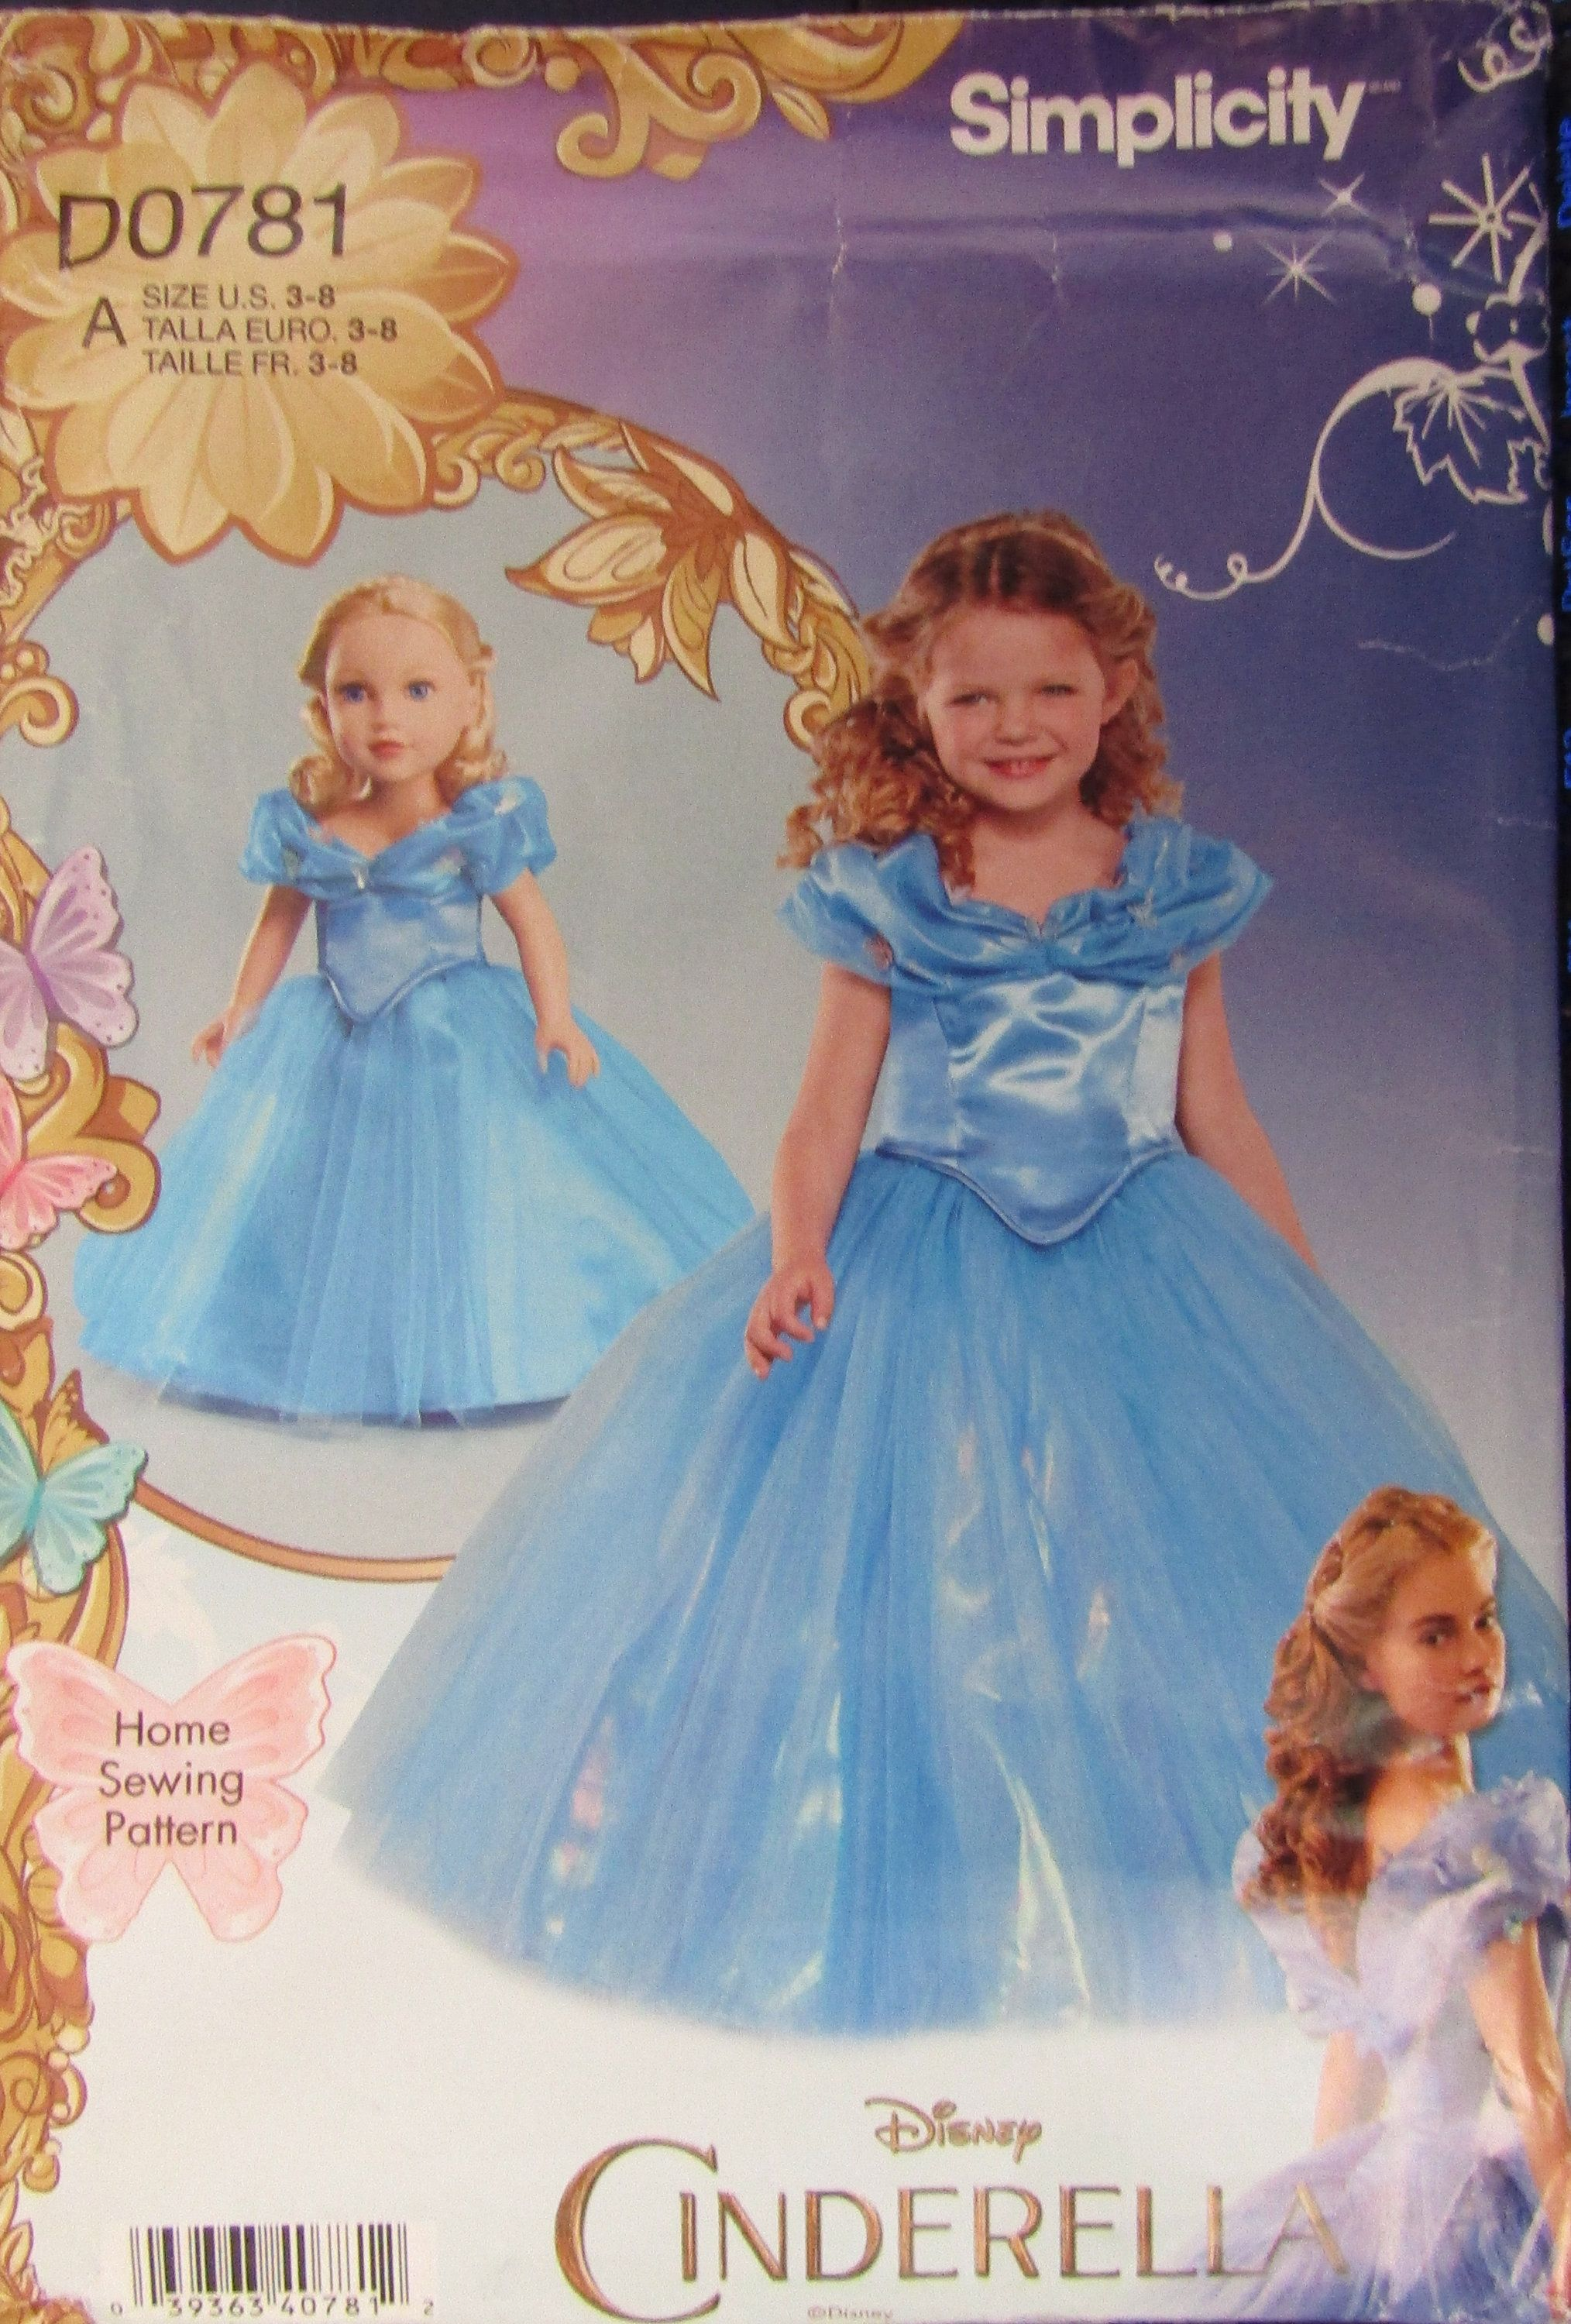 Simplicity 0781 Childs Cinderella Costumes Sewing Pattern Etsy Costume Sewing Patterns Cinderella Costume Sewing Patterns